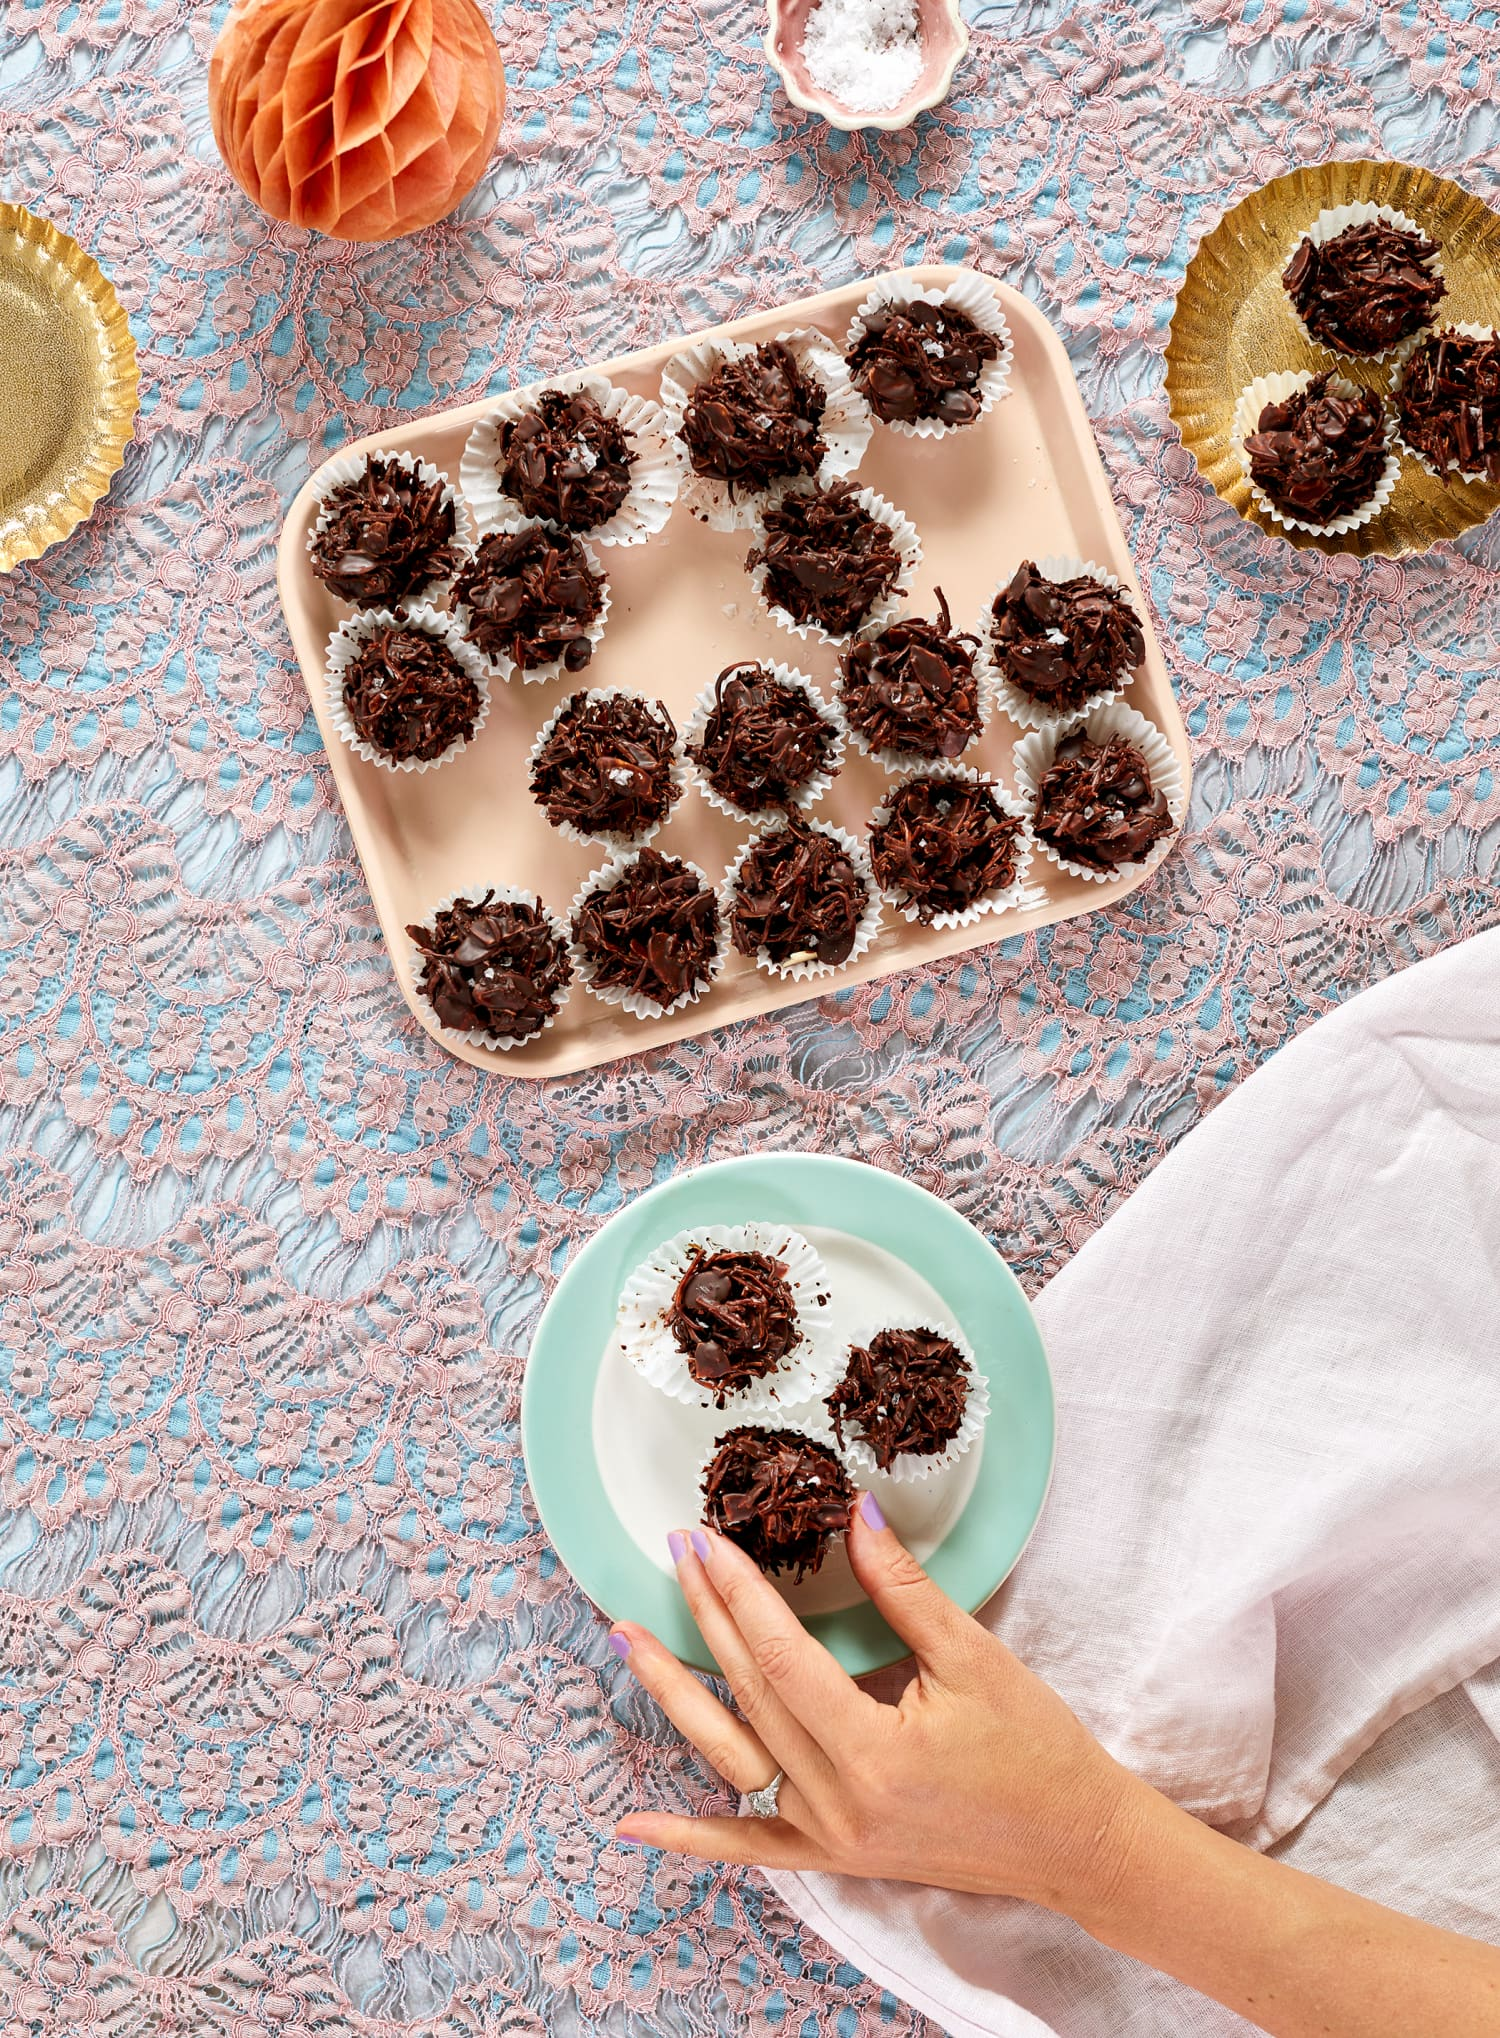 Recipe: Toasted Coconut & Almond Chocolate Clusters